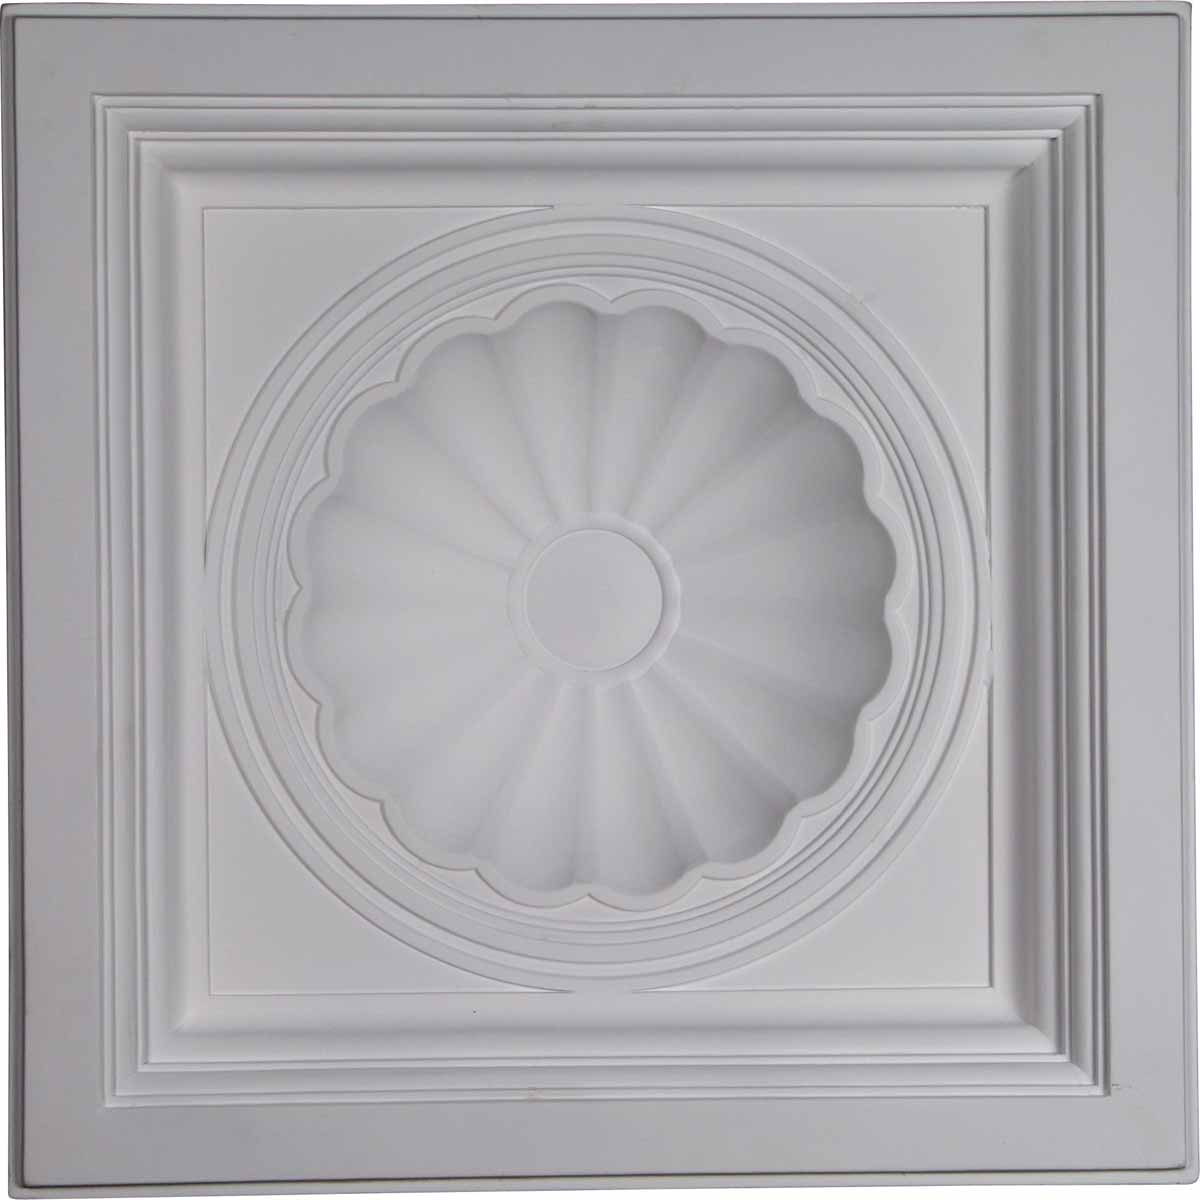 Ekena millwork ceiling tile primed polyurethane ct24x24sh ekena millwork ceiling tile primed polyurethane ct24x24sh dailygadgetfo Image collections